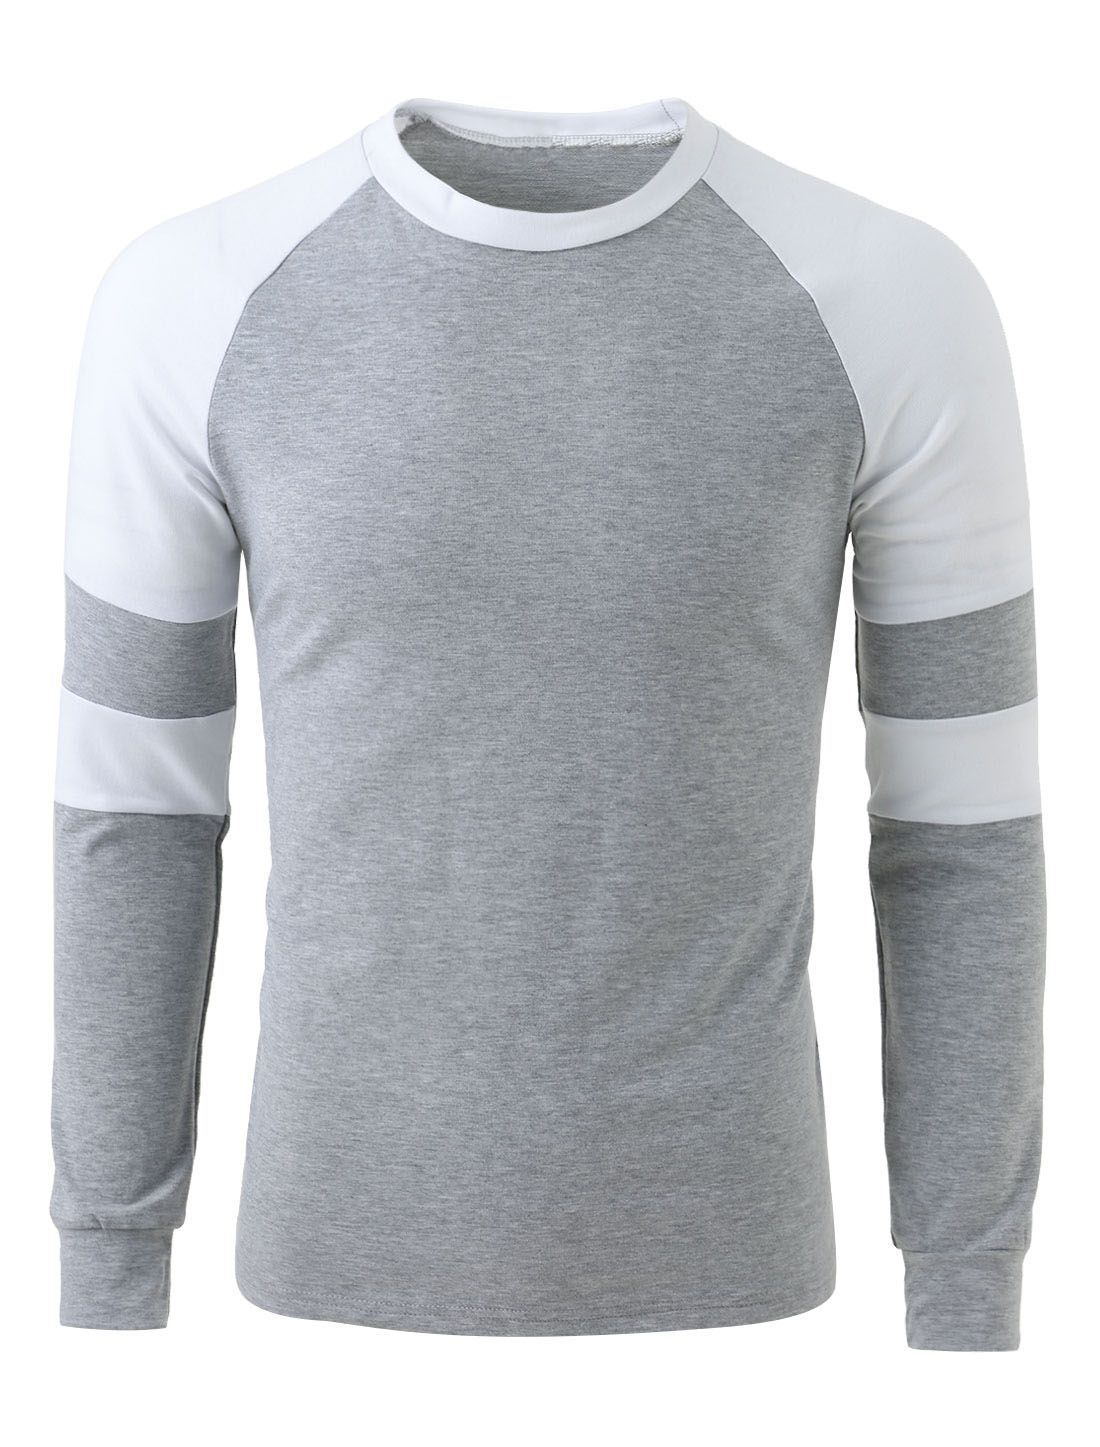 Men Long Sleeve Crew Neck Contrast Color Casual T-Shirts Light Gray L